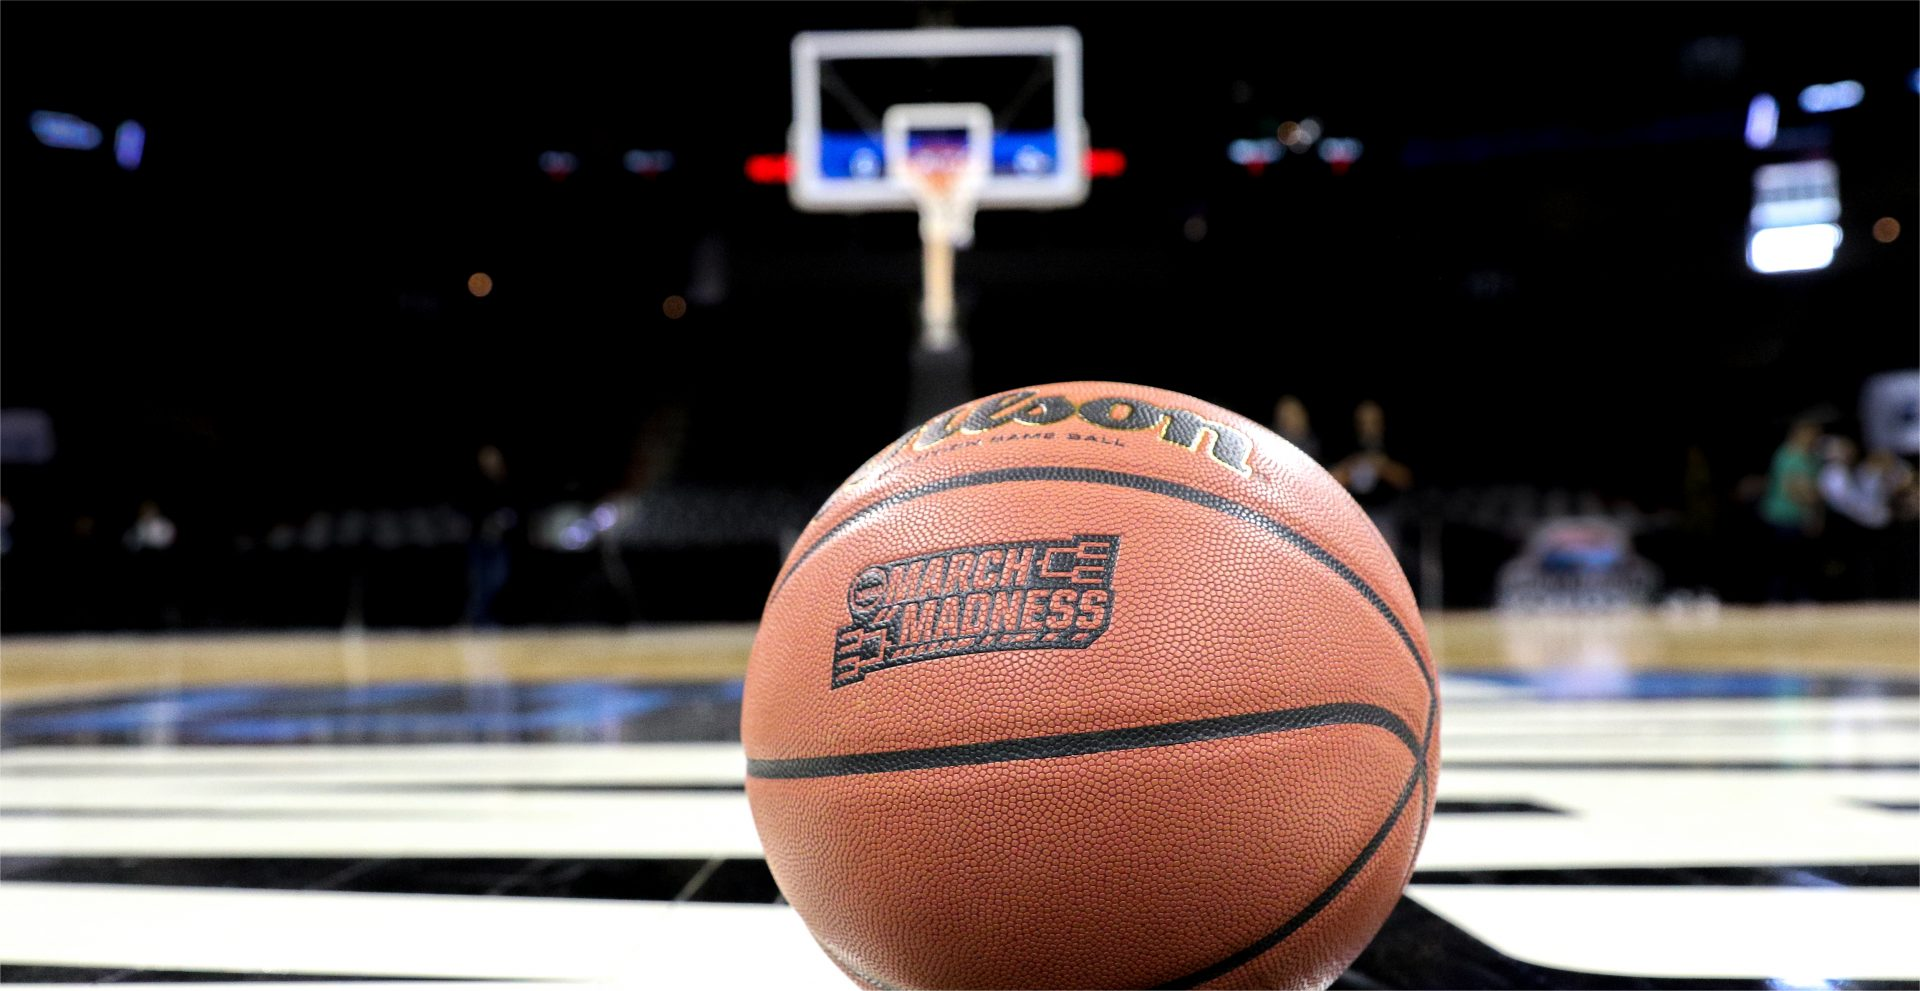 New basketball league aims to be an NCAA alternative for student athletes